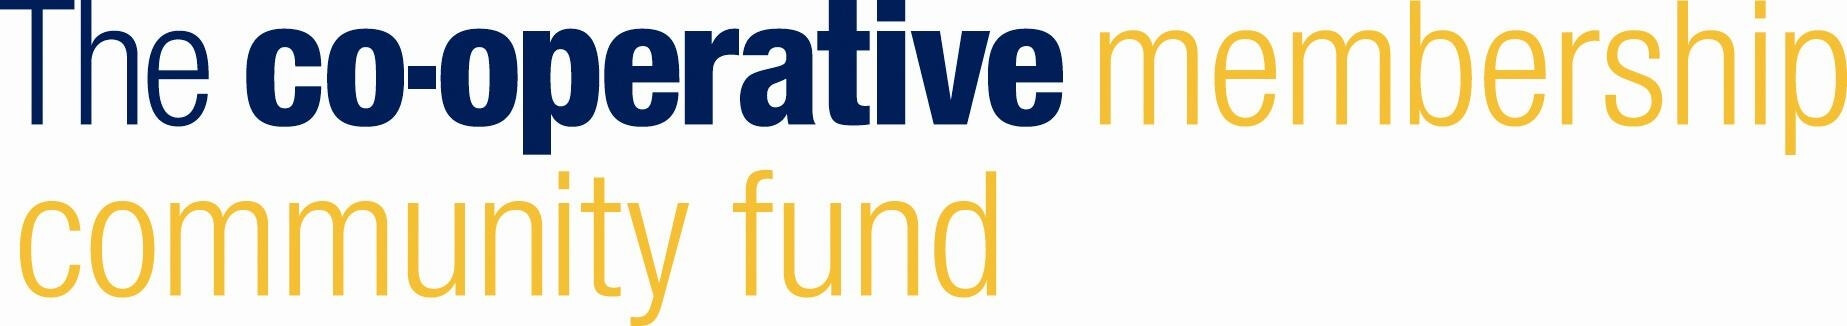 Co-operative-Community-Fund-logo